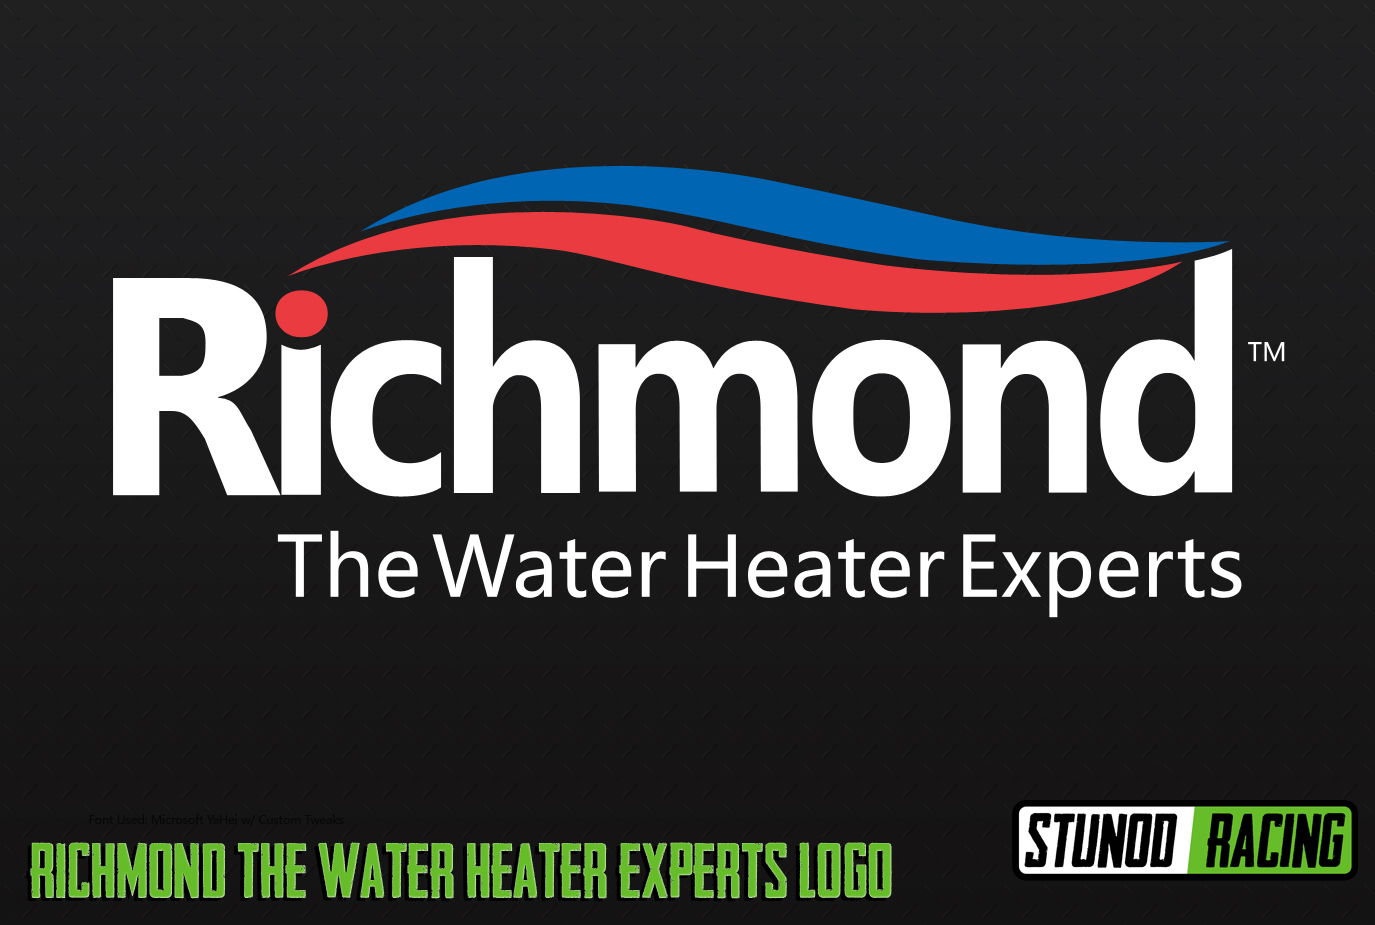 StunodRacing-Richmond_The-water-heater-experts-Logo-Download.jpg